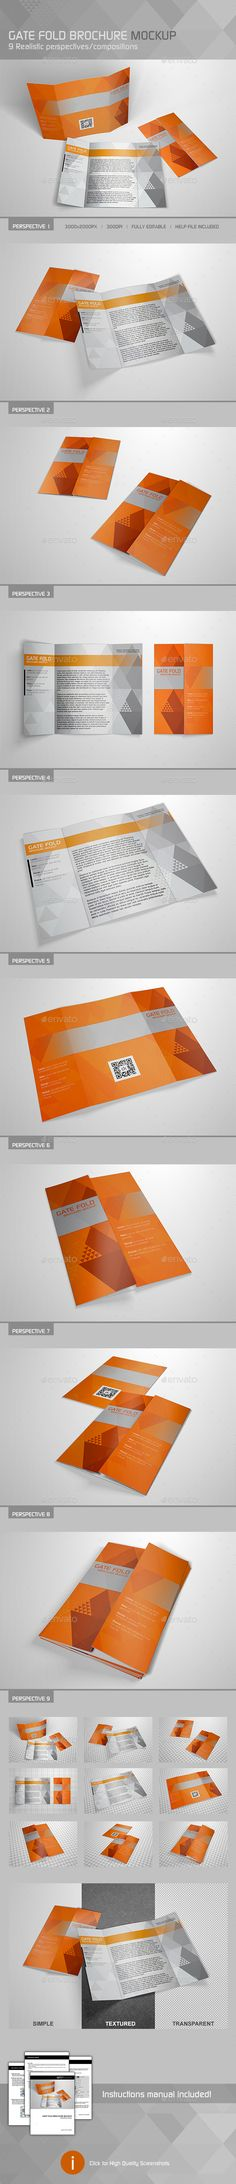 Square Gate Fold Brochure Mockup  Mockup Brochures And Booklet